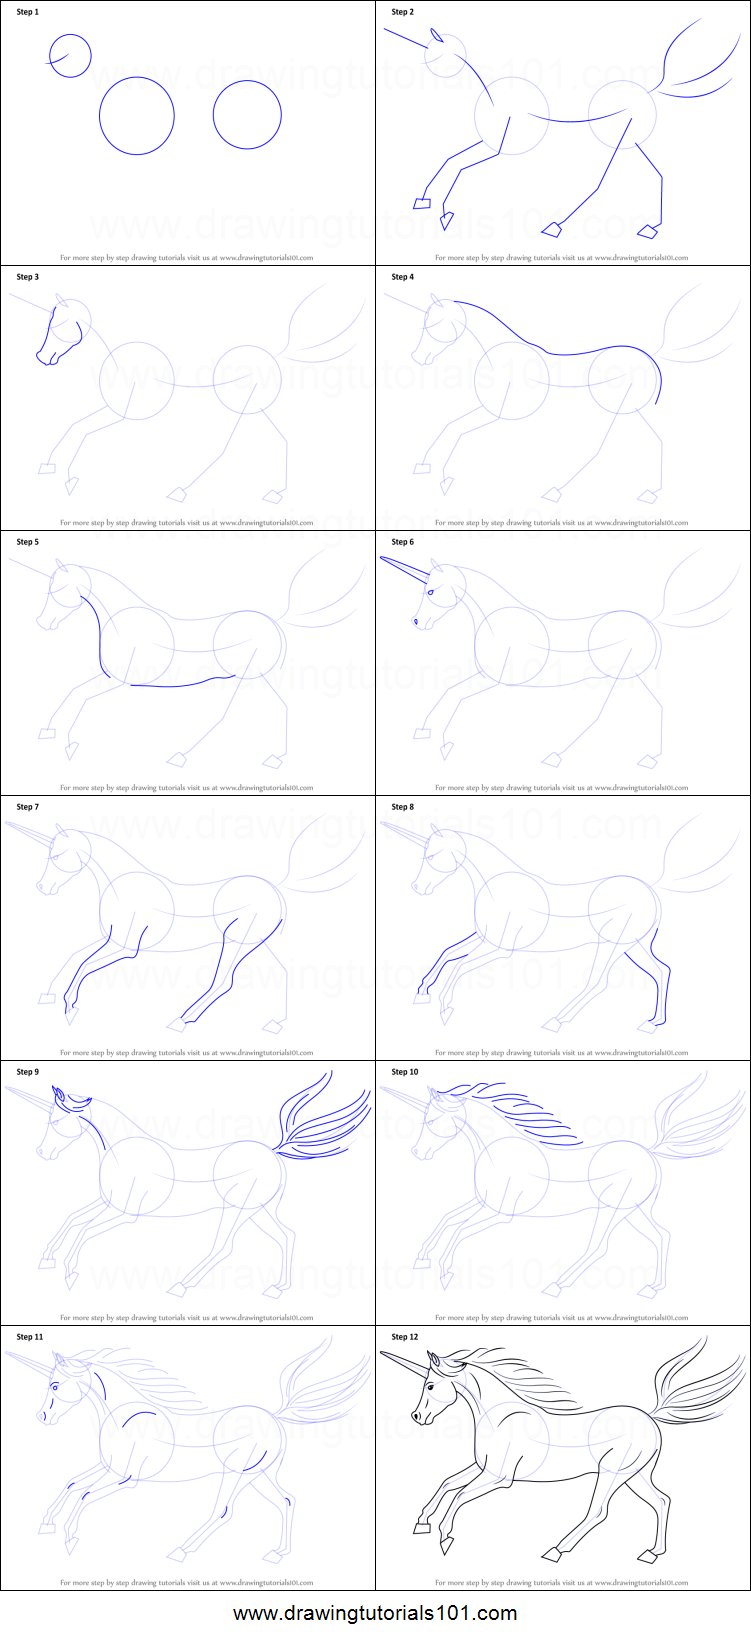 How To Draw A Unicorn Printable Step By Step Drawing Sheet